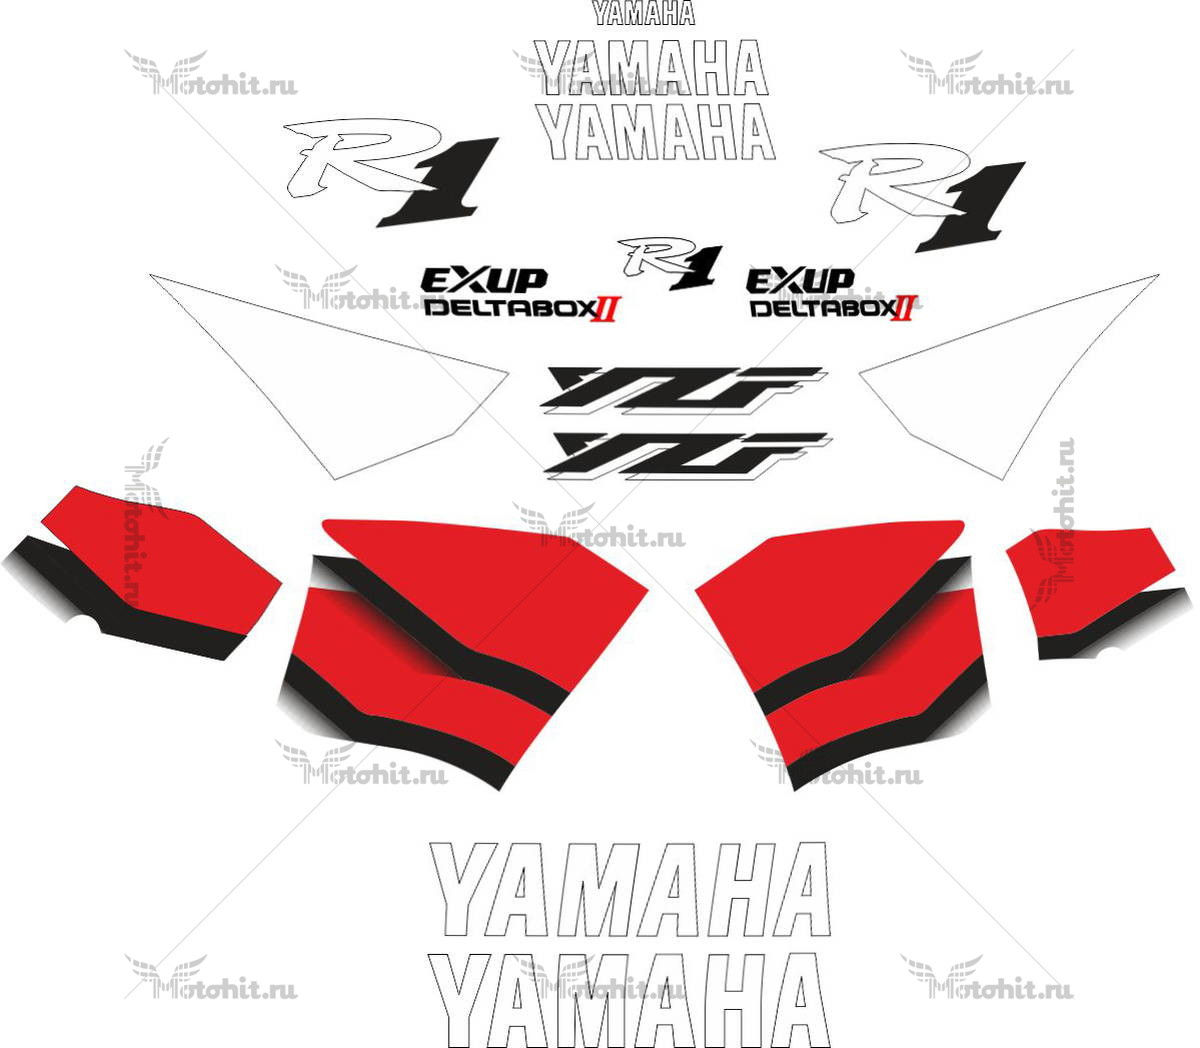 Комплект наклеек Yamaha YZF-R1 2000 RED-GRADIENT